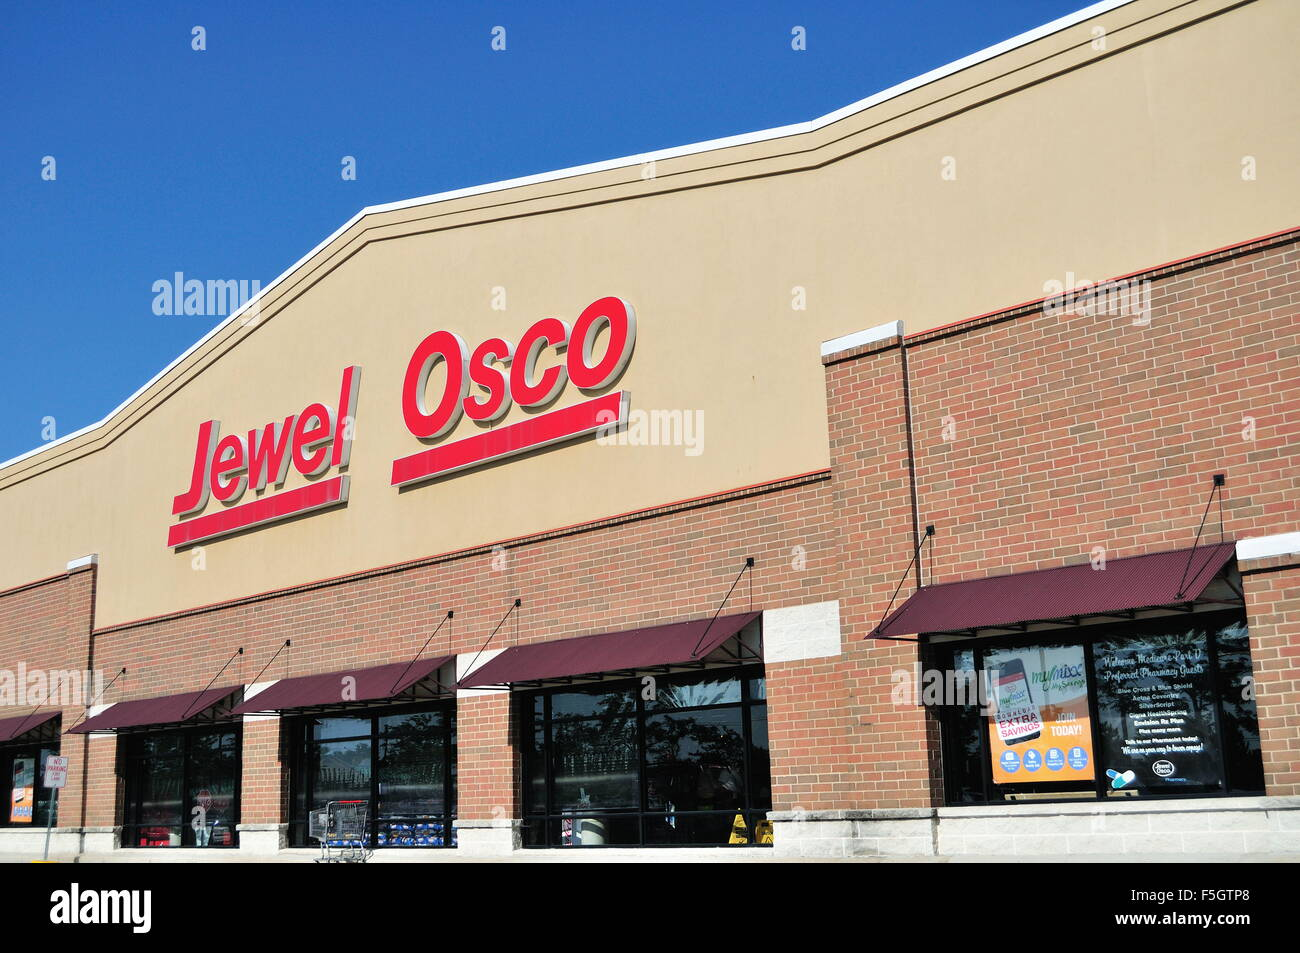 A Jewel food store store combined with an Osco Drug facility in a strip mall in South Elgin, Illinois, USA. - Stock Image